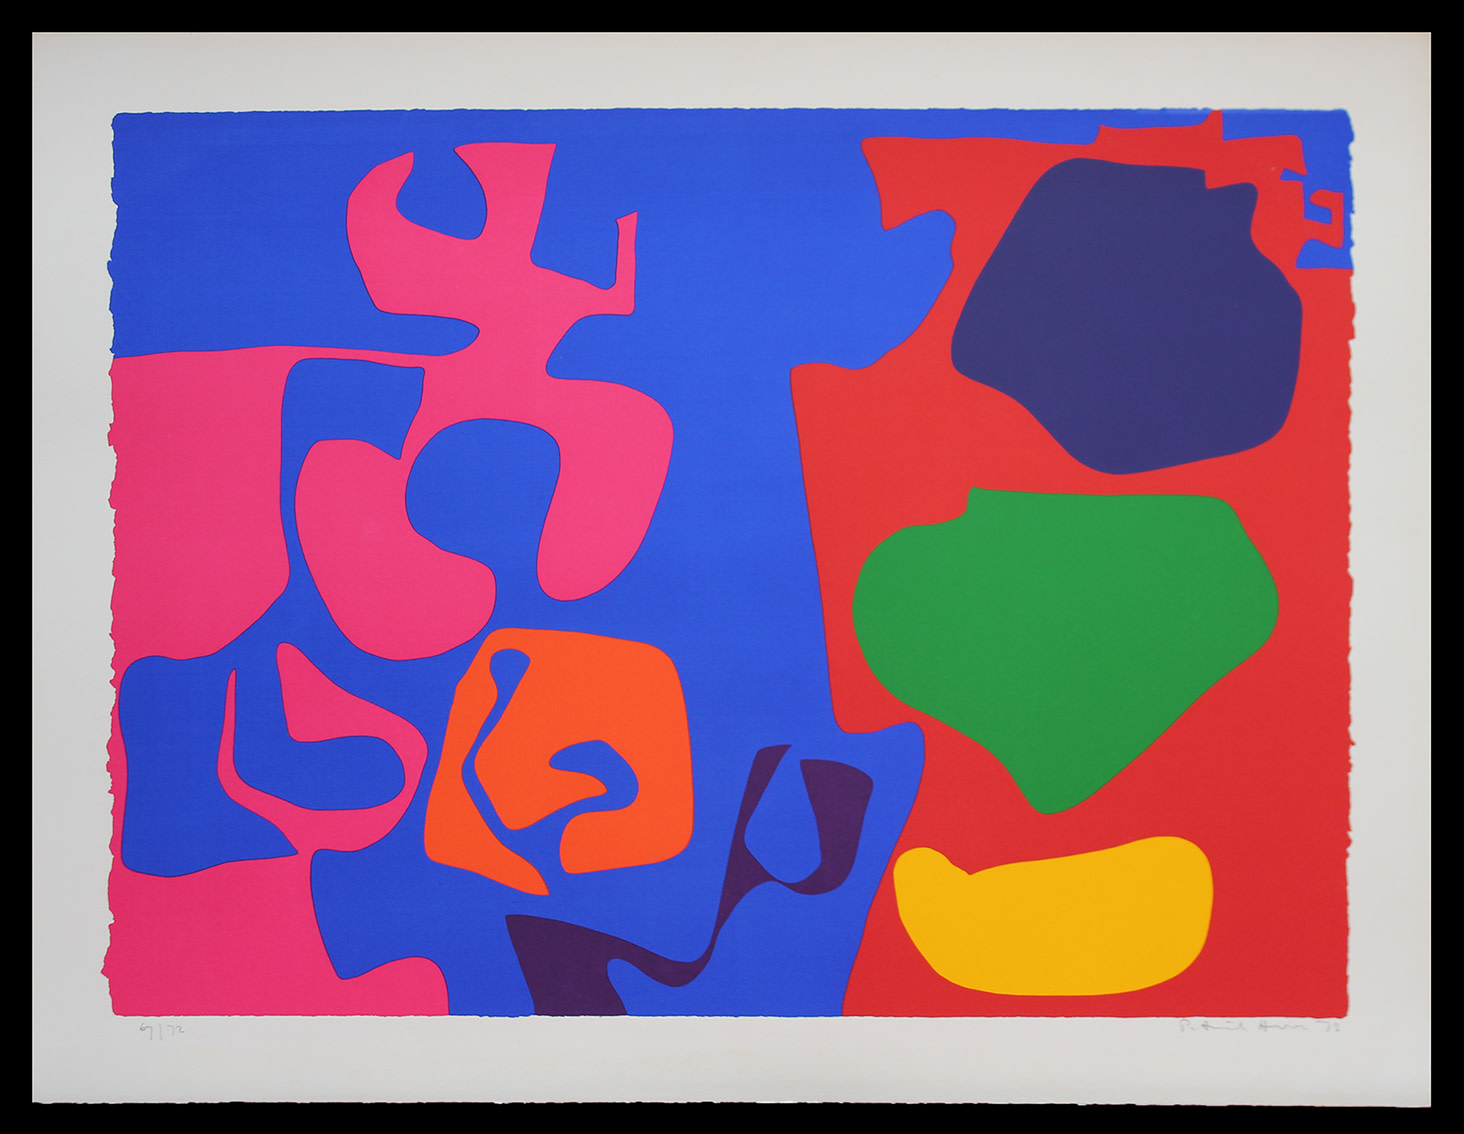 <span class=&#34;link fancybox-details-link&#34;><a href=&#34;/artists/93-patrick-heron-cbe/works/4477-patrick-heron-cbe-january-1973-9-1973/&#34;>View Detail Page</a></span><div class=&#34;artist&#34;><strong>Patrick Heron CBE</strong></div> 1920 – 1999 <div class=&#34;title&#34;><em>January 1973 : 9</em>, 1973</div> <div class=&#34;signed_and_dated&#34;>signed, dated and numbered in pencil</div> <div class=&#34;medium&#34;>silkscreen print in colours on wove paper, with full margins</div> <div class=&#34;dimensions&#34;>Image size: 58.5 x 80 cm<br /> 23 1/8 x 31 1/2 in<br /> sheet size: 69.5 x 91 cm<br /> 27 3/8 x 35 7/8 in</div> <div class=&#34;edition_details&#34;>Edition 67 of 72</div><div class=&#34;copyright_line&#34;>© The Estate of Patrick Heron</div>